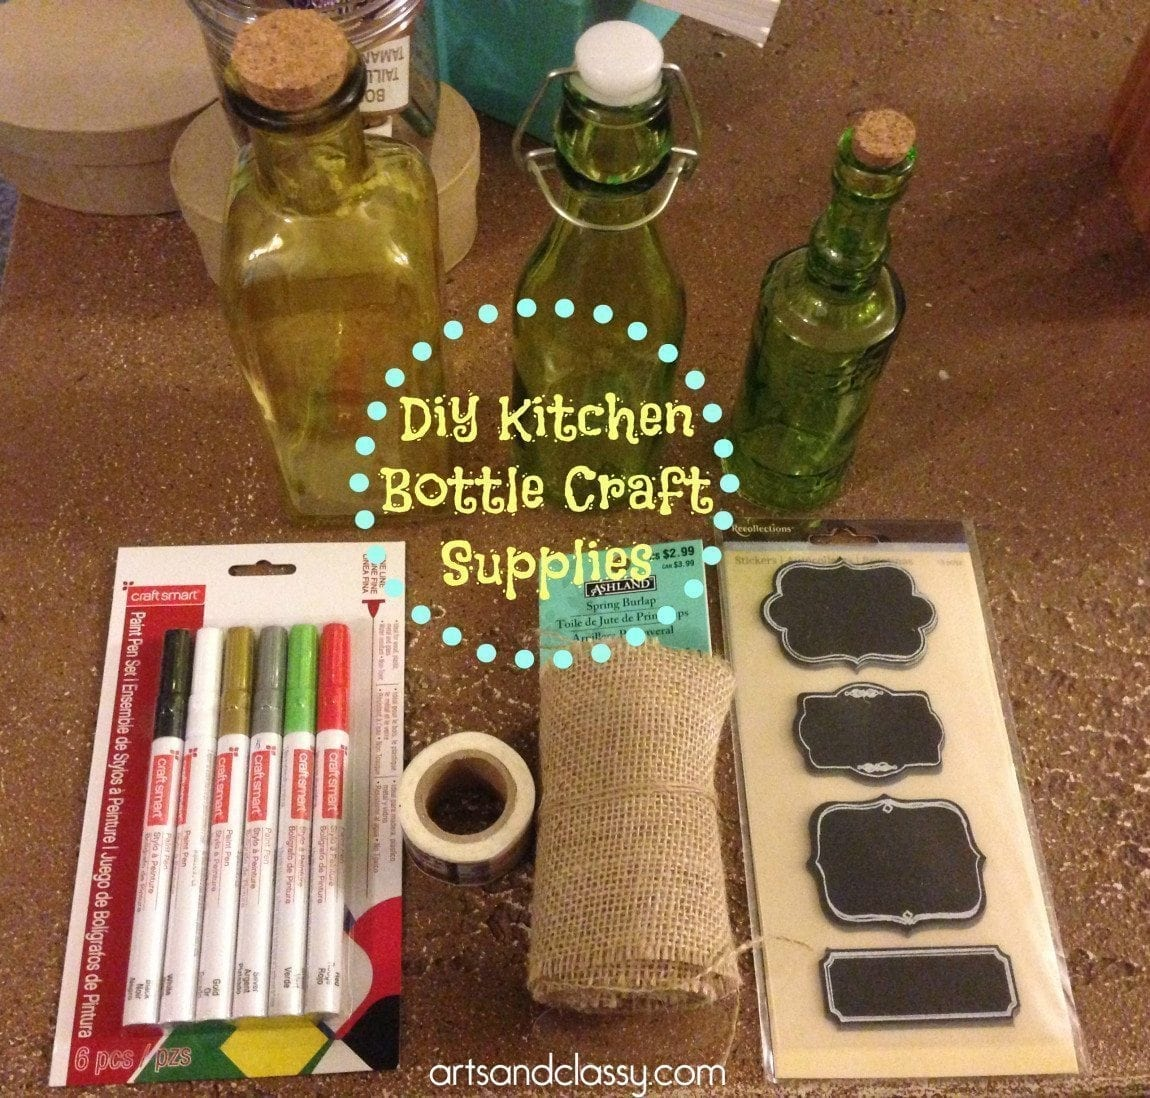 Michaels_Pinterest_Hometalk_Party_Arts_and_Classy_Blog_Crafting_13 copy